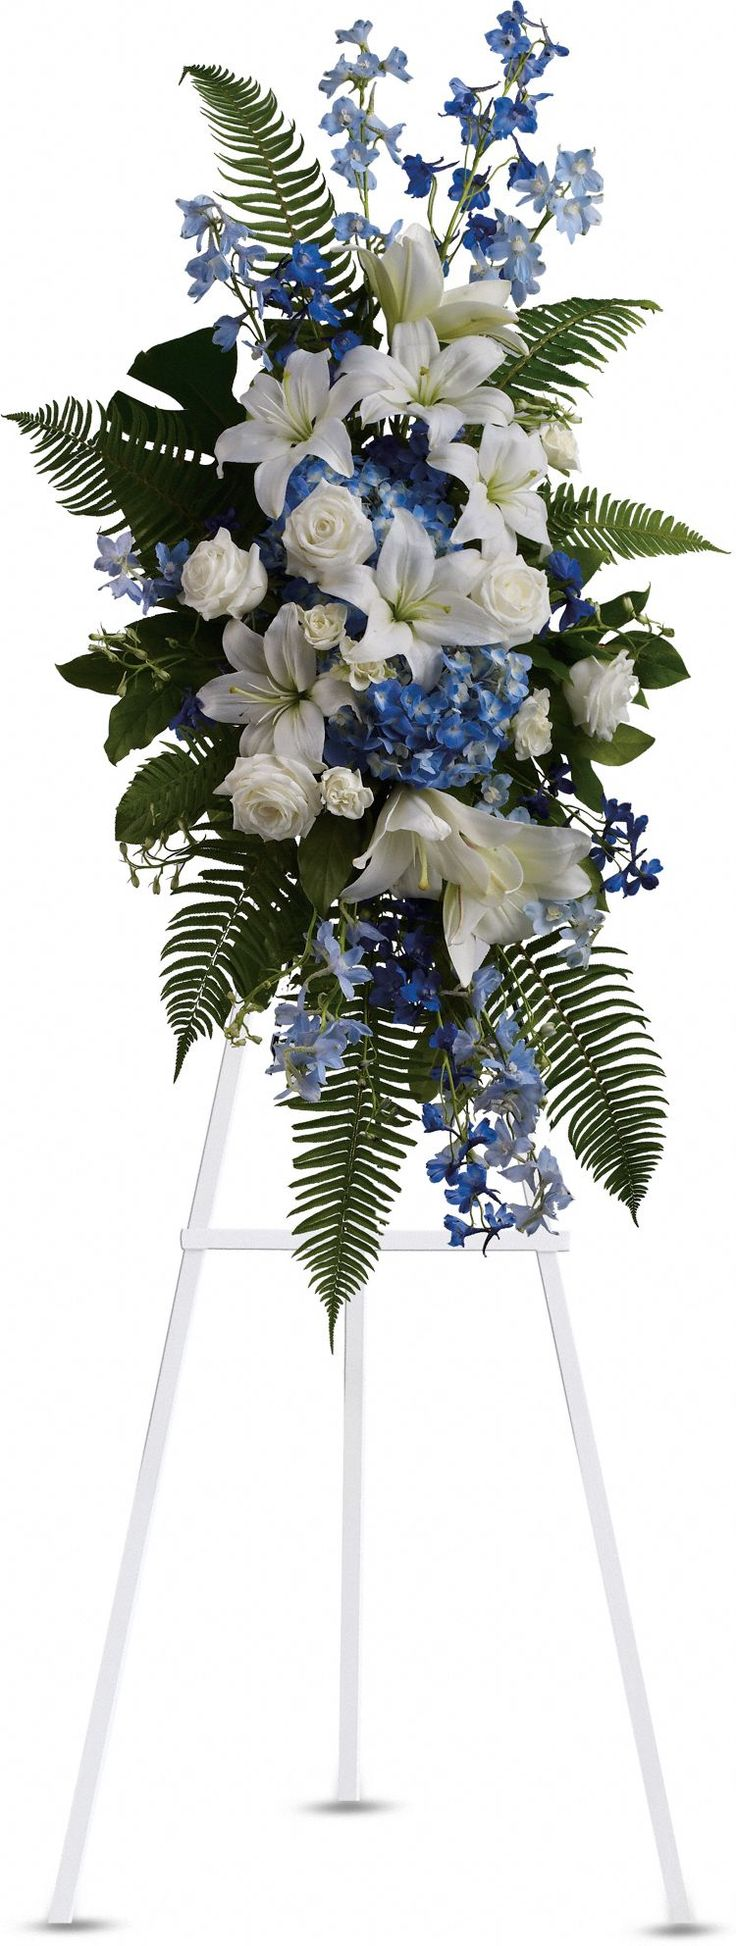 Pinner said:Ocean Breeze Spray. I am going to create this tomorrow for a funeral visitation in purple and white. I hope I can pull off the same artistry as te telegflora bouquet